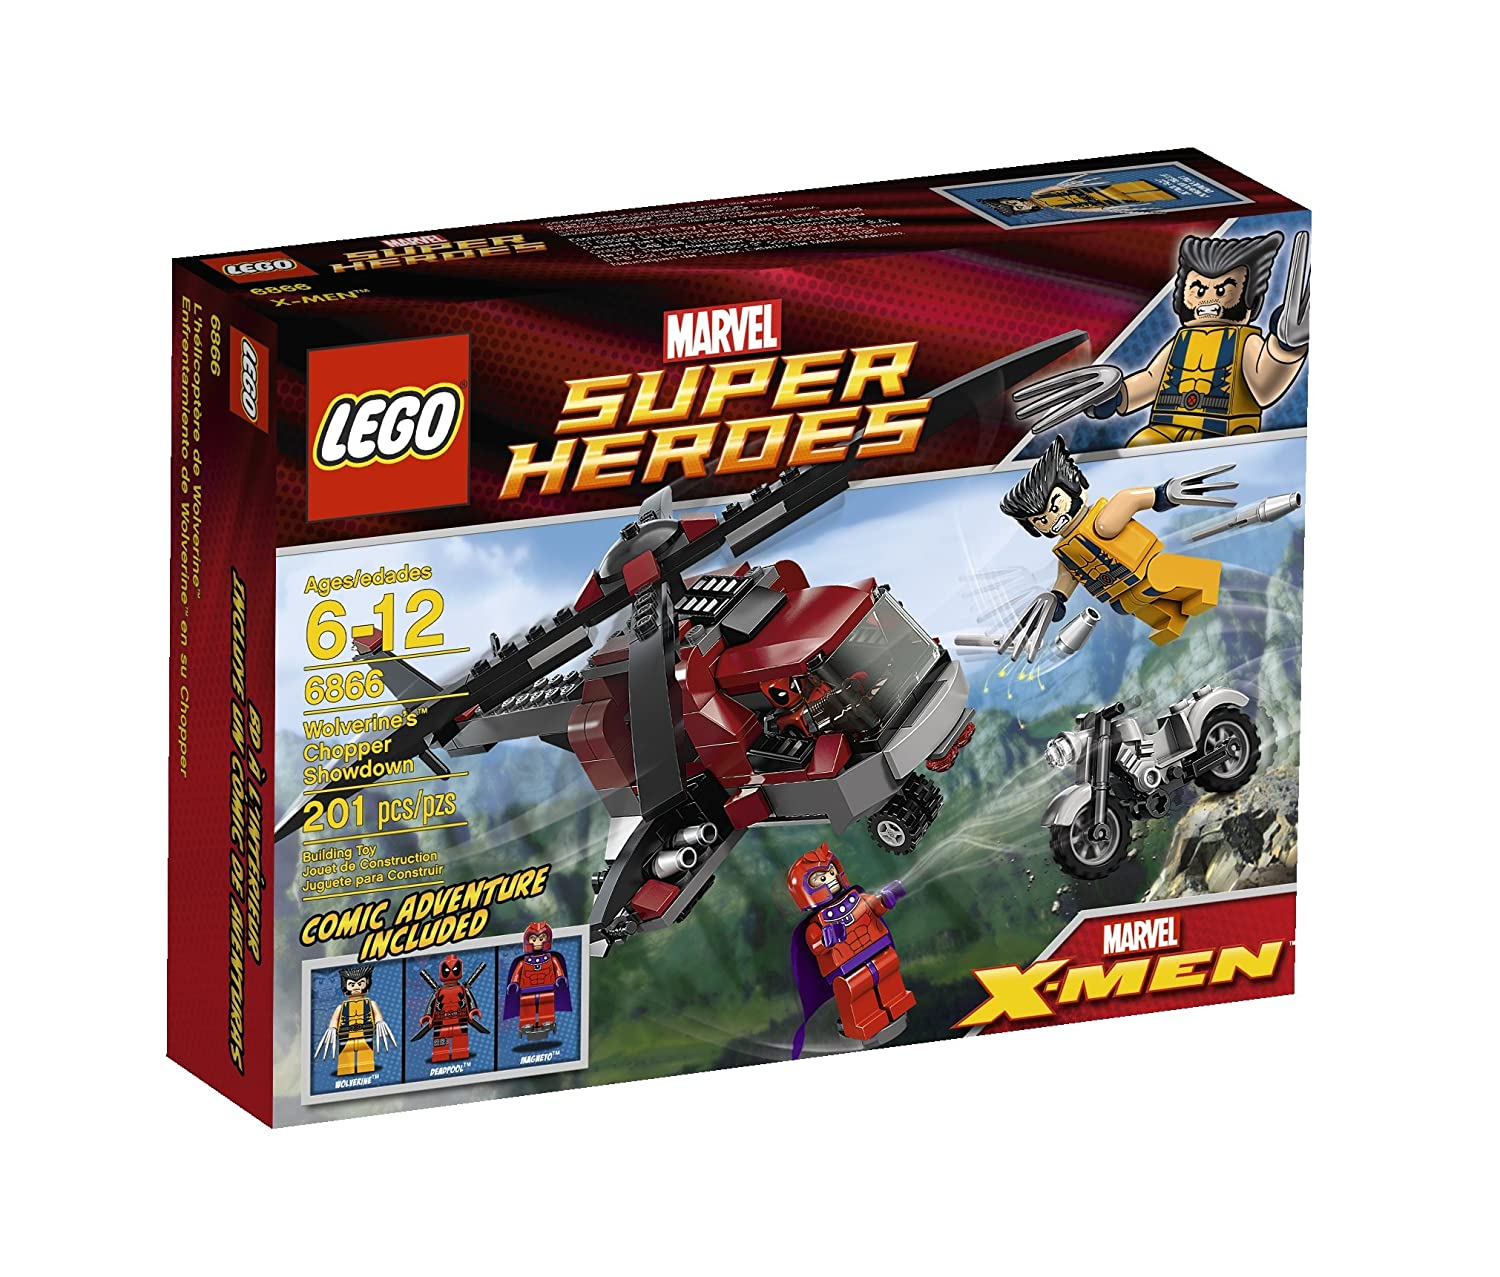 LEGO Superheroes 4654654 Discontinued by manufacturer LEGO Wolverine Chopper Showdown 6866